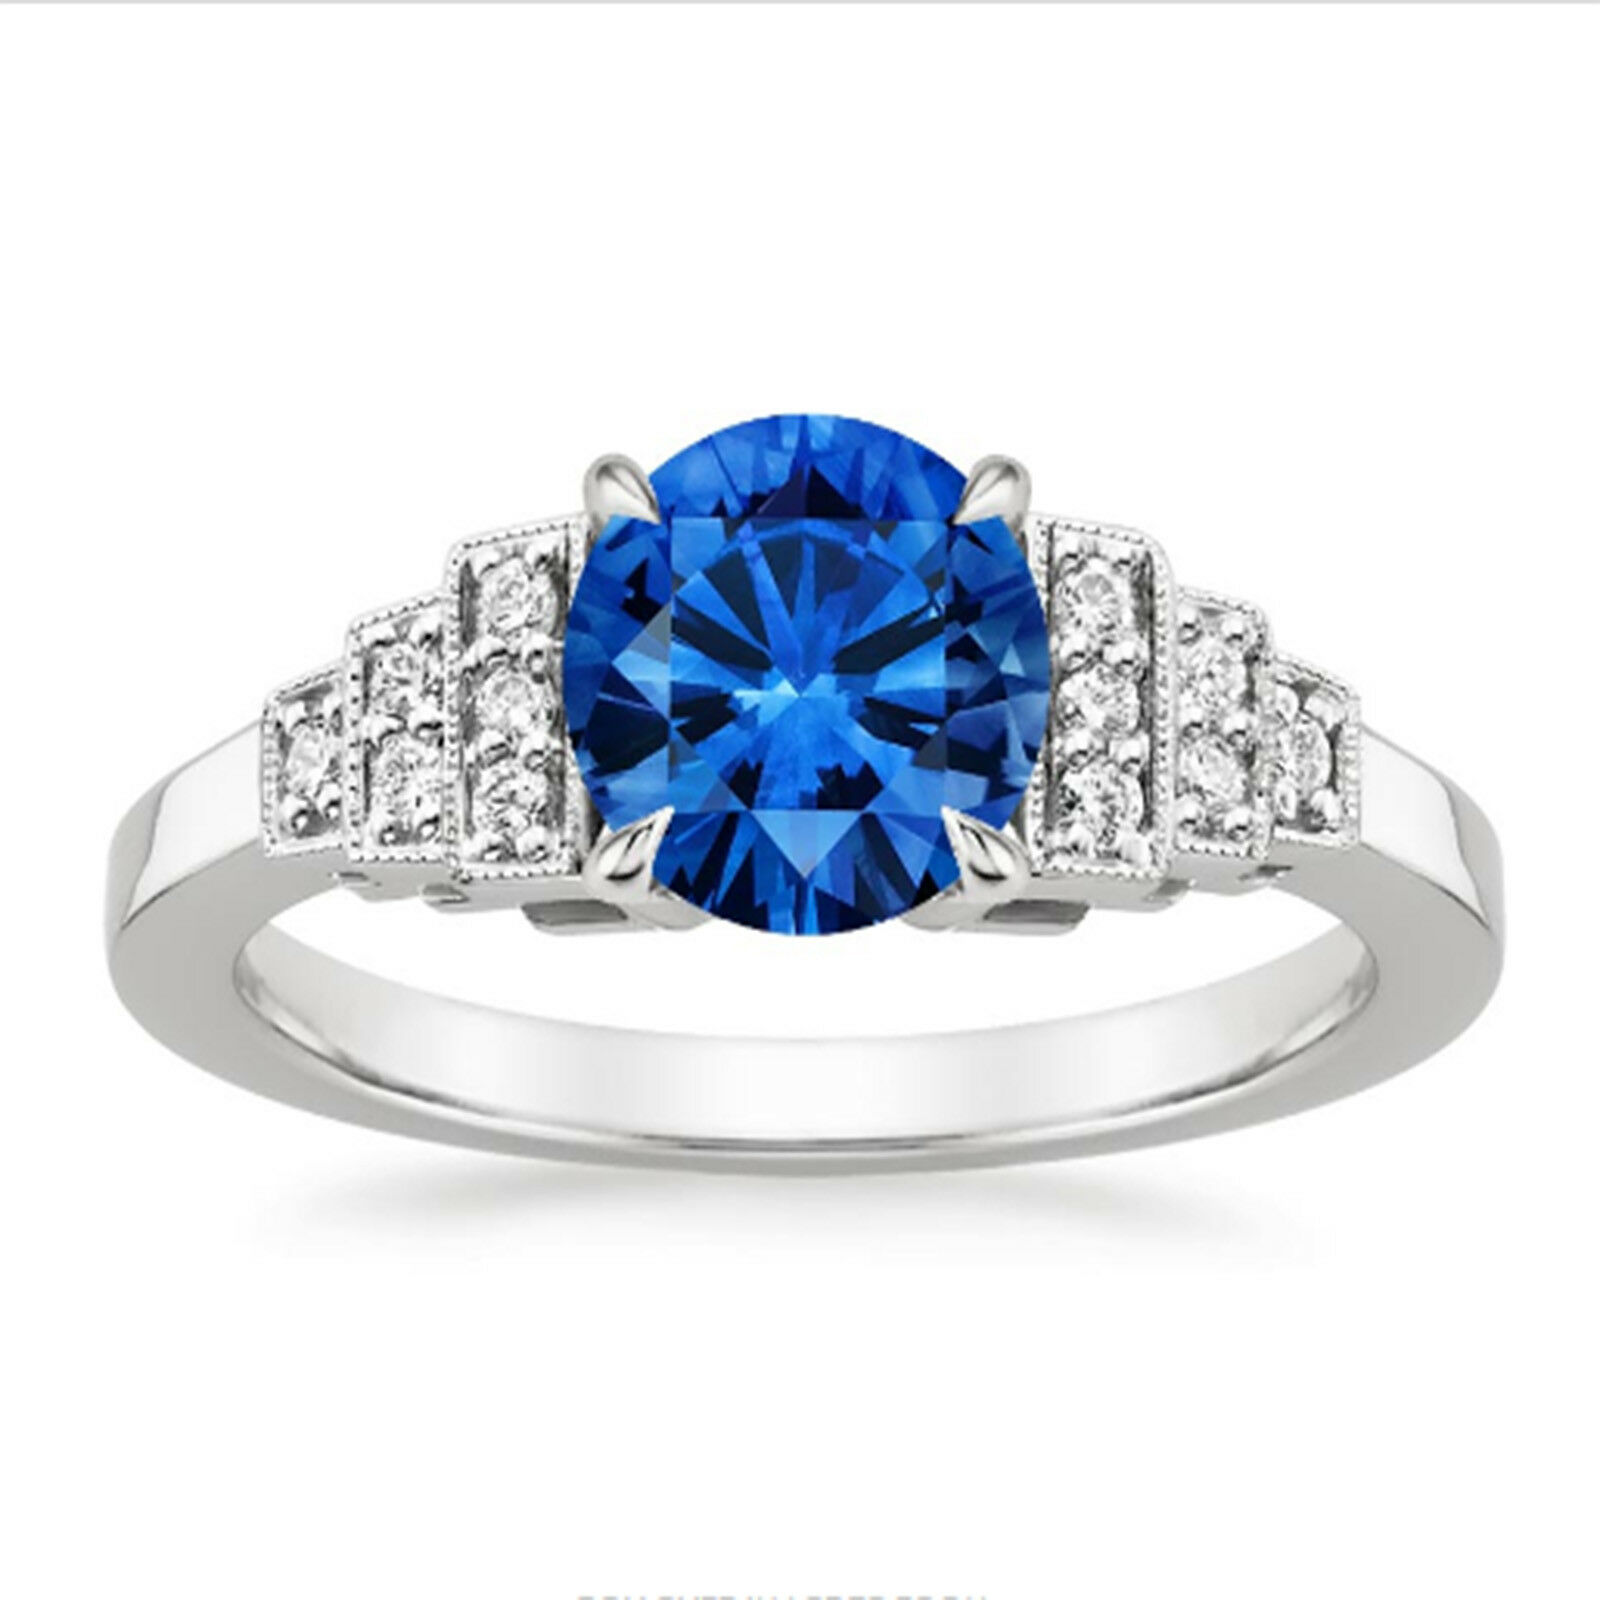 1.50 Ct bluee Sapphire Wedding Ring 14K Solid White gold Diamond Rings Size 6 6.5